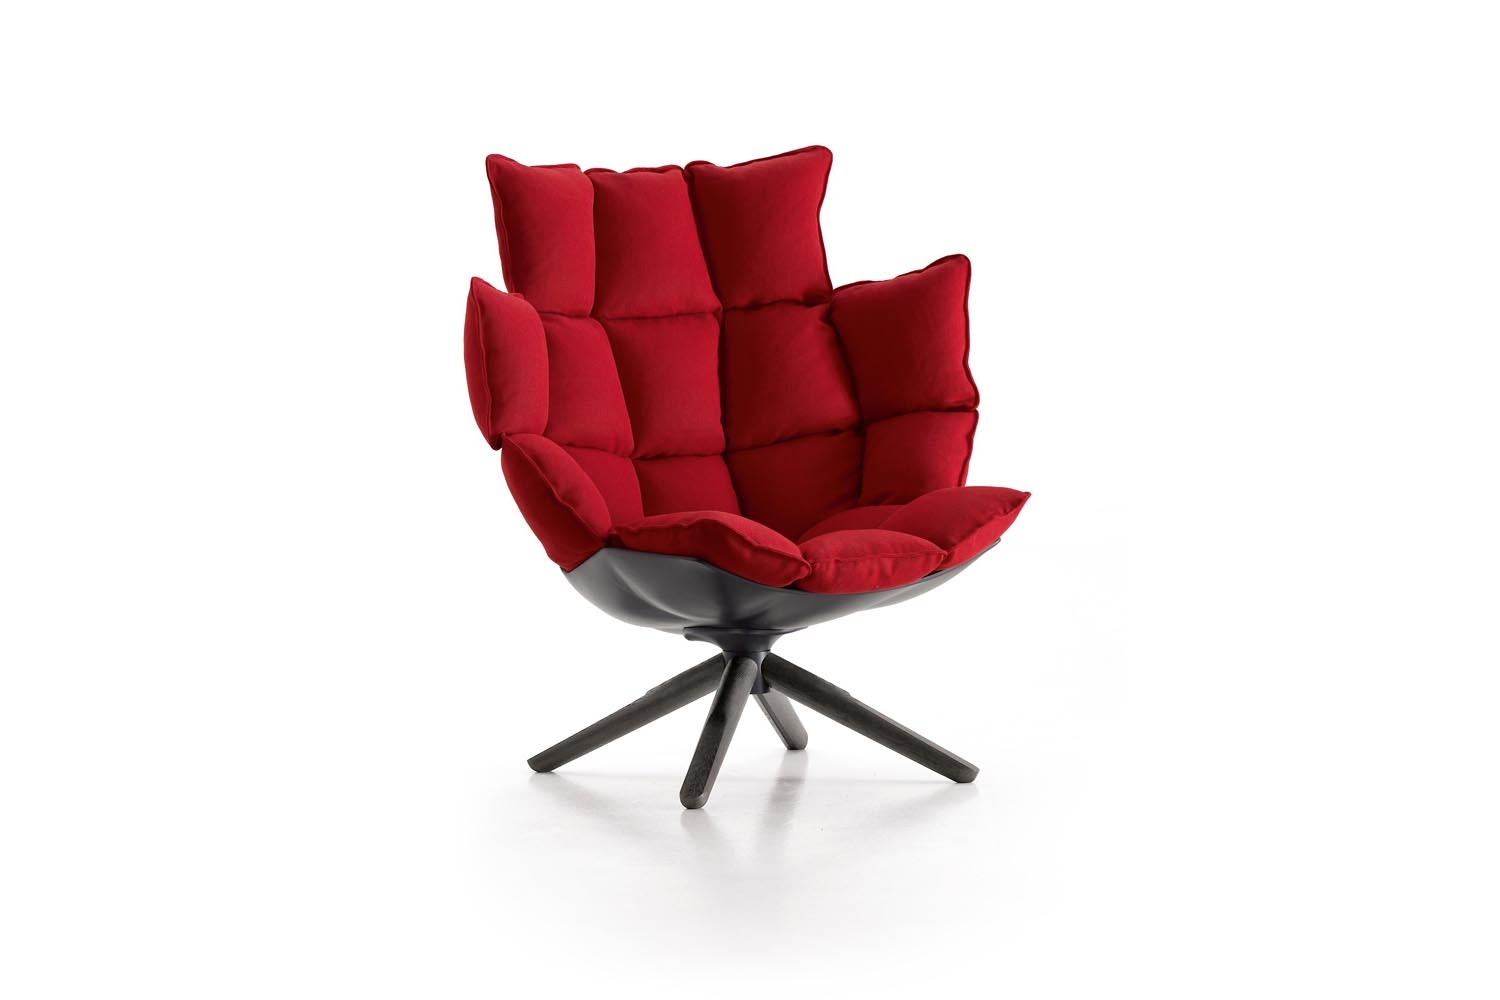 Husk Armchair by Patricia Urquiola for B&B Italia